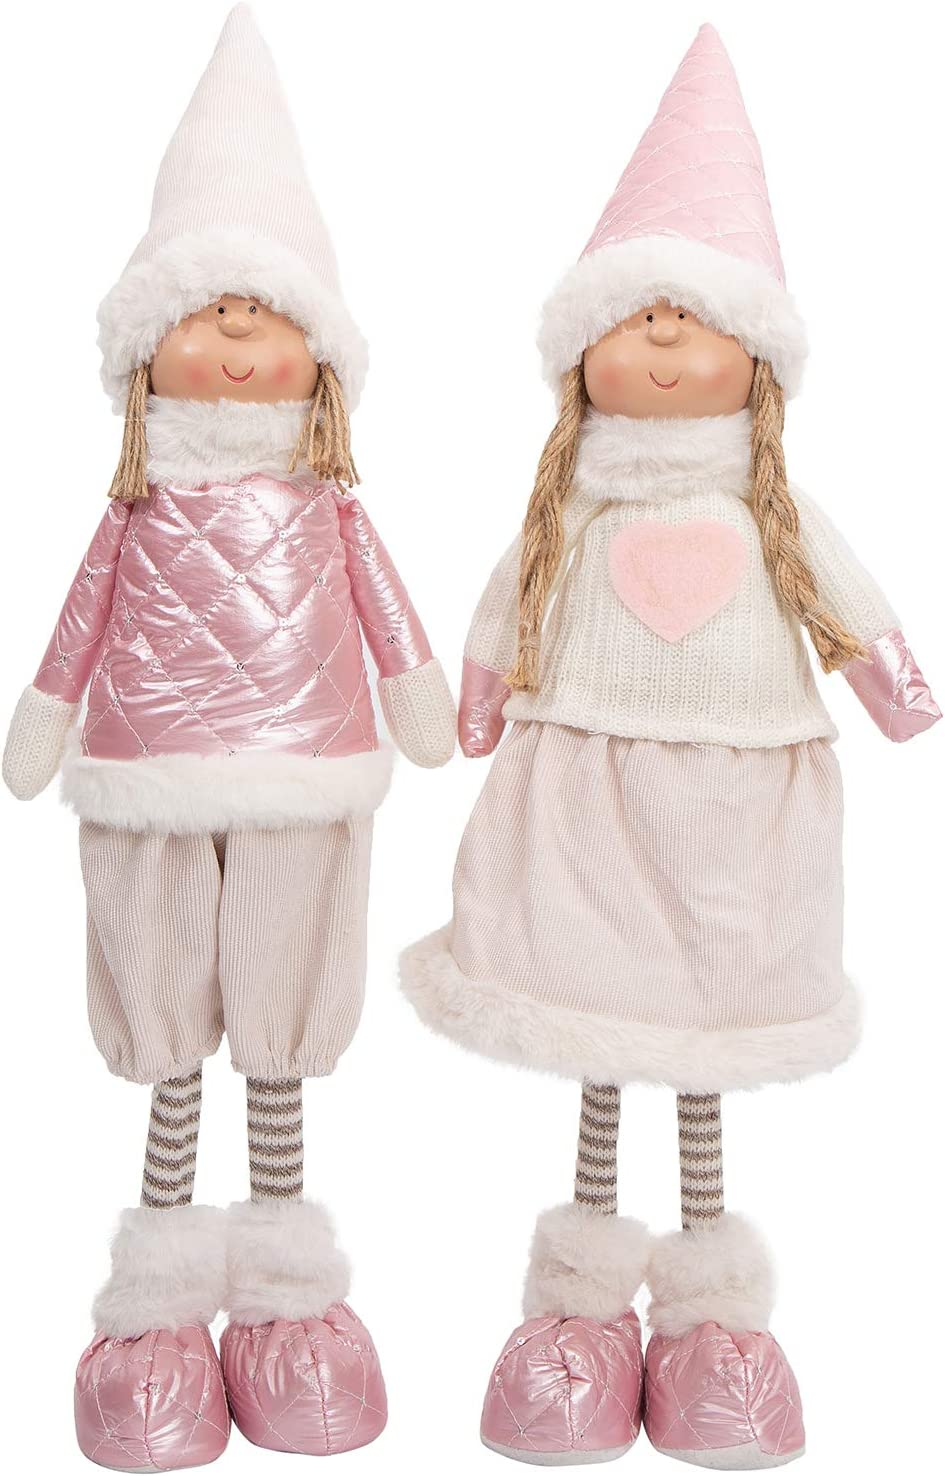 Handmade Christmas Gnomes Decoration Valentine's Gifts Gnome Boy and Girl Figurines Home Decor Xmas Dolls Decoration Holiday Presents (2 Pack)